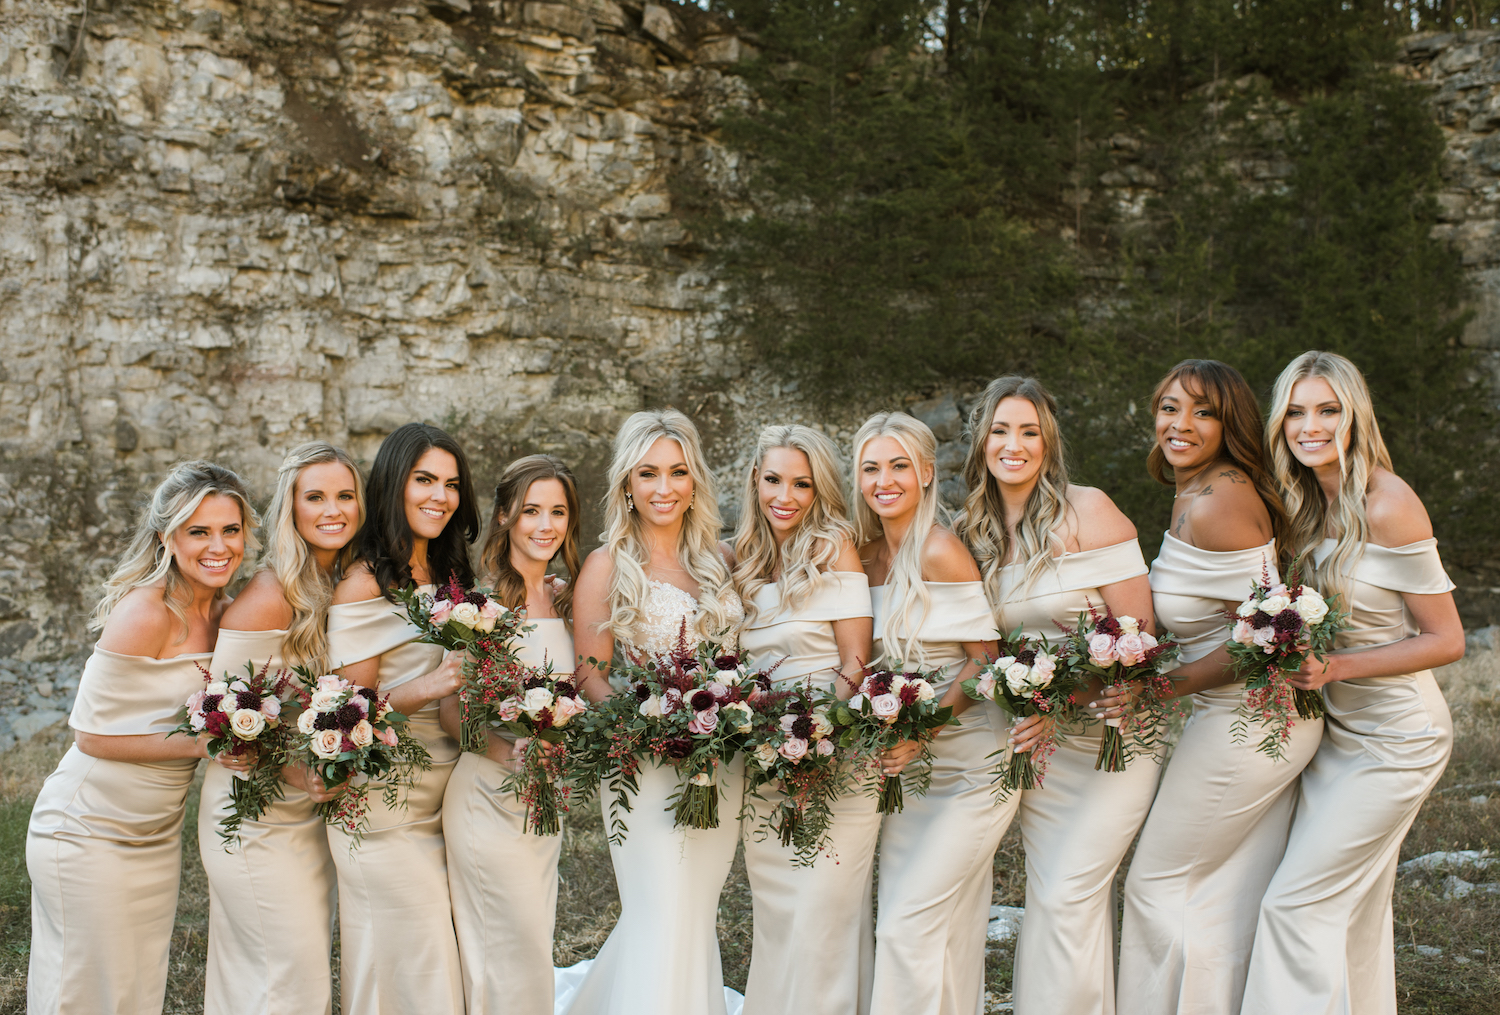 Champagne Bridesmaid Dresses: Upscale Marble Graystone Quarry Wedding featured on Nashville Bride Guide